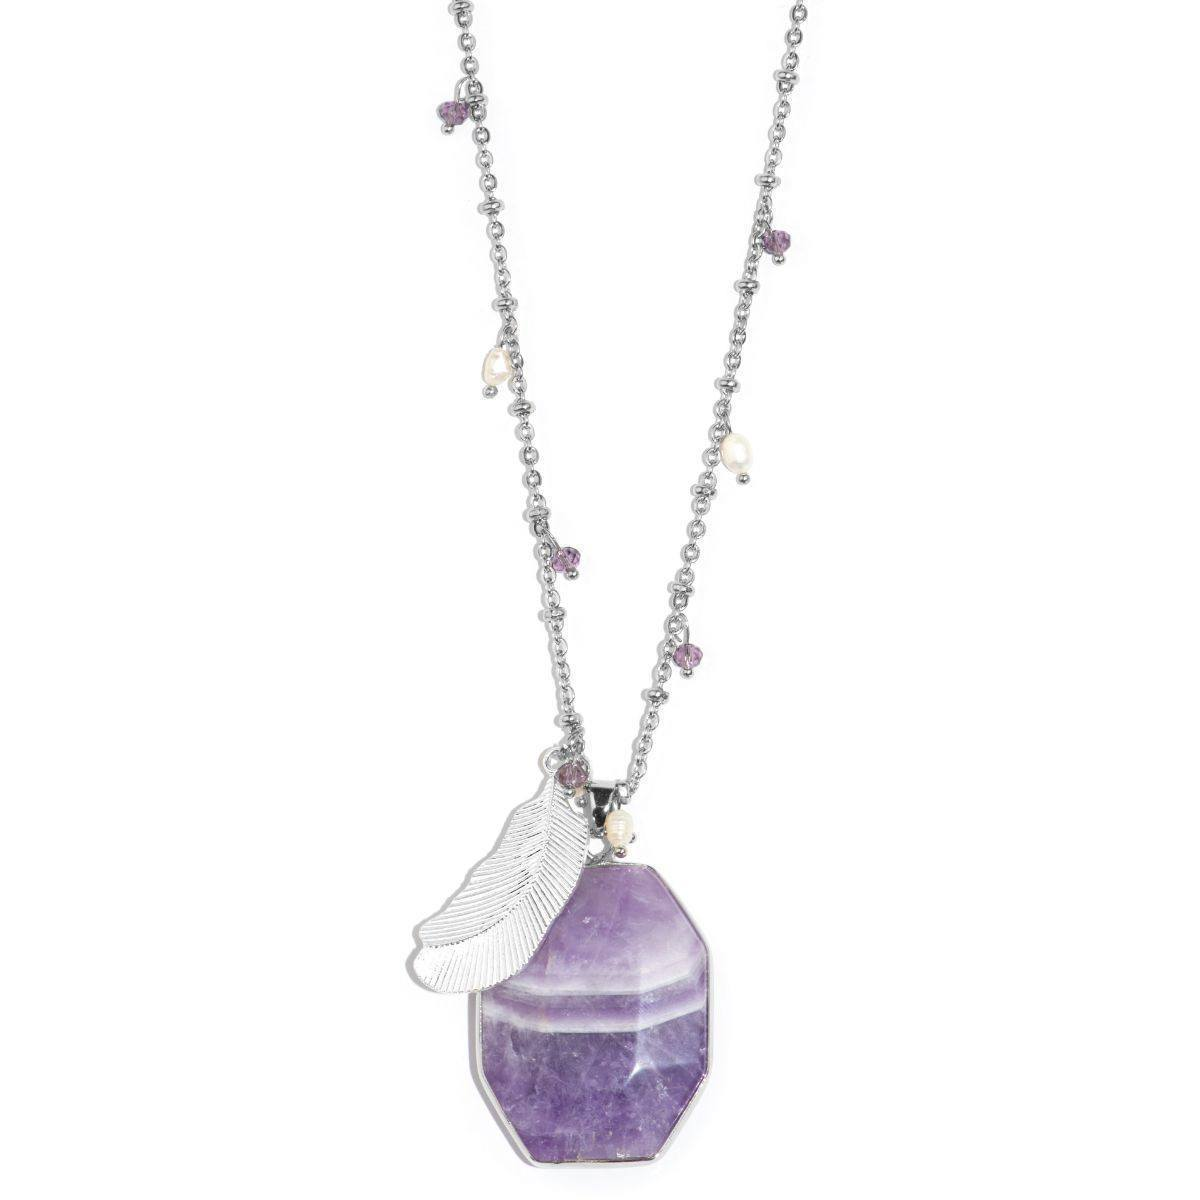 Violet Empress Amethyst Necklace